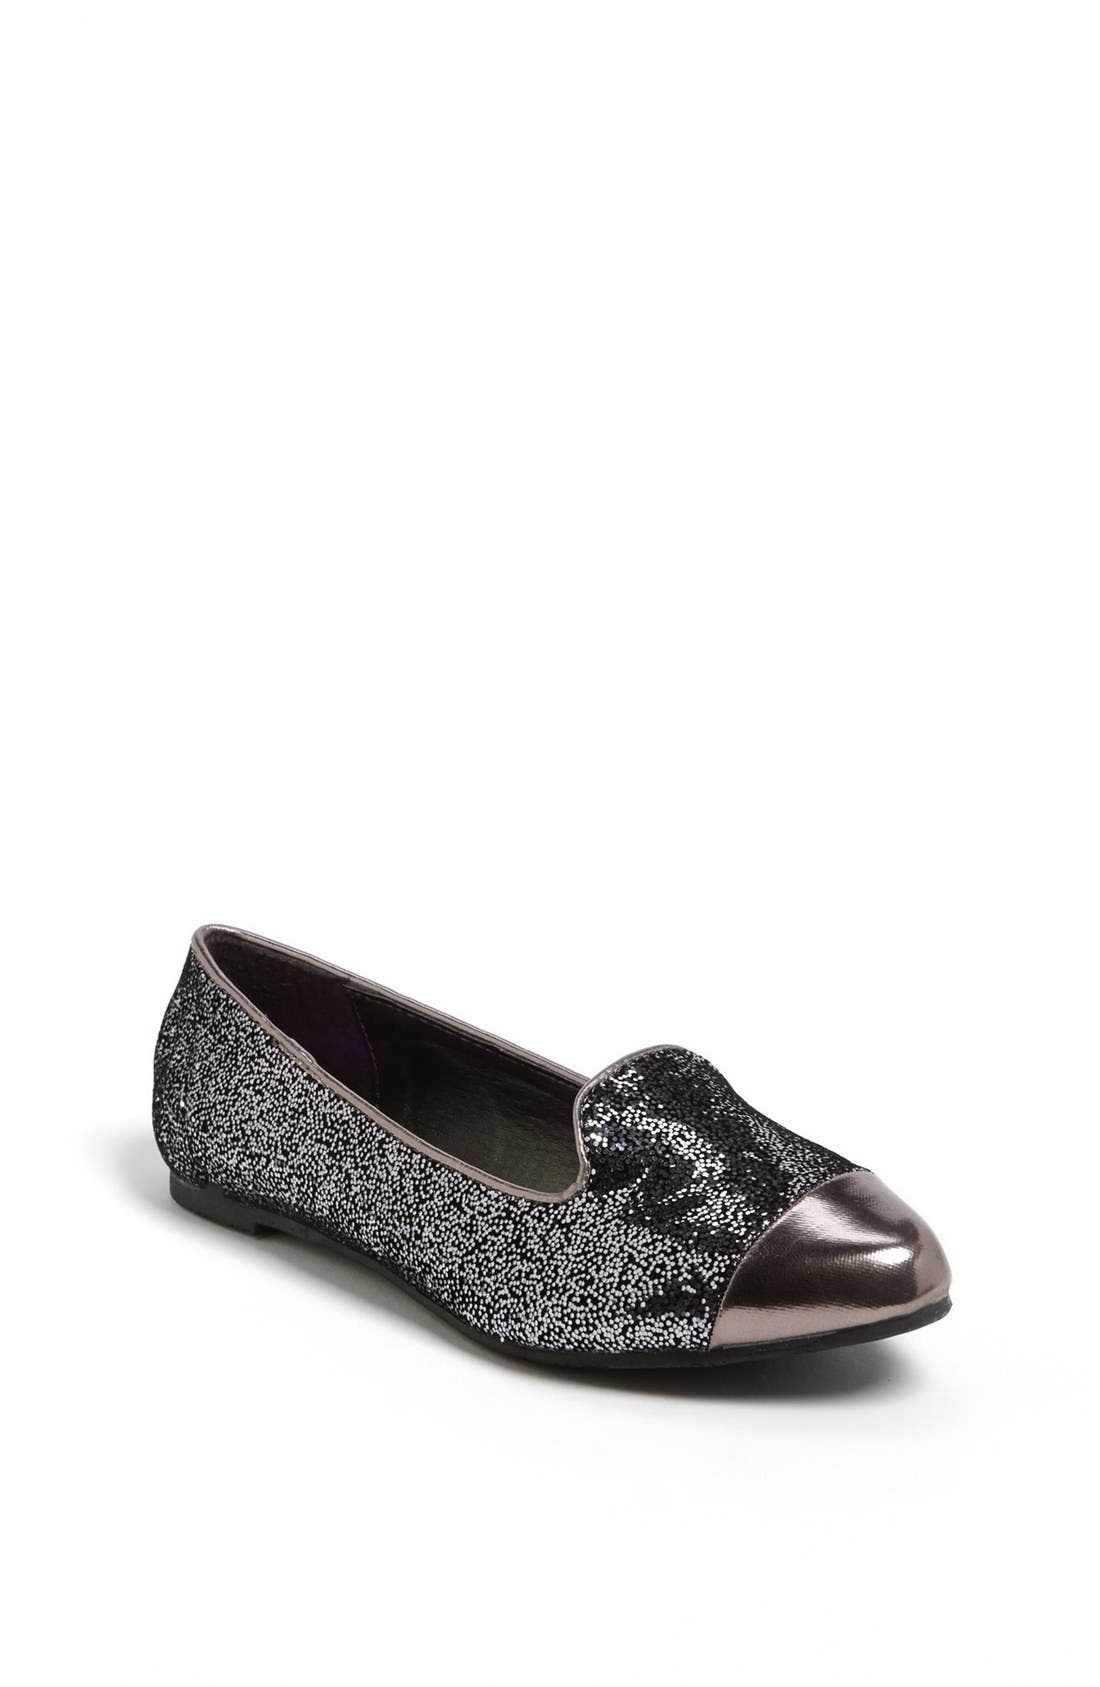 Alternate Image 1 Selected - kensie girl Glitter Flat (Toddler, Little Kid & Big Kid)